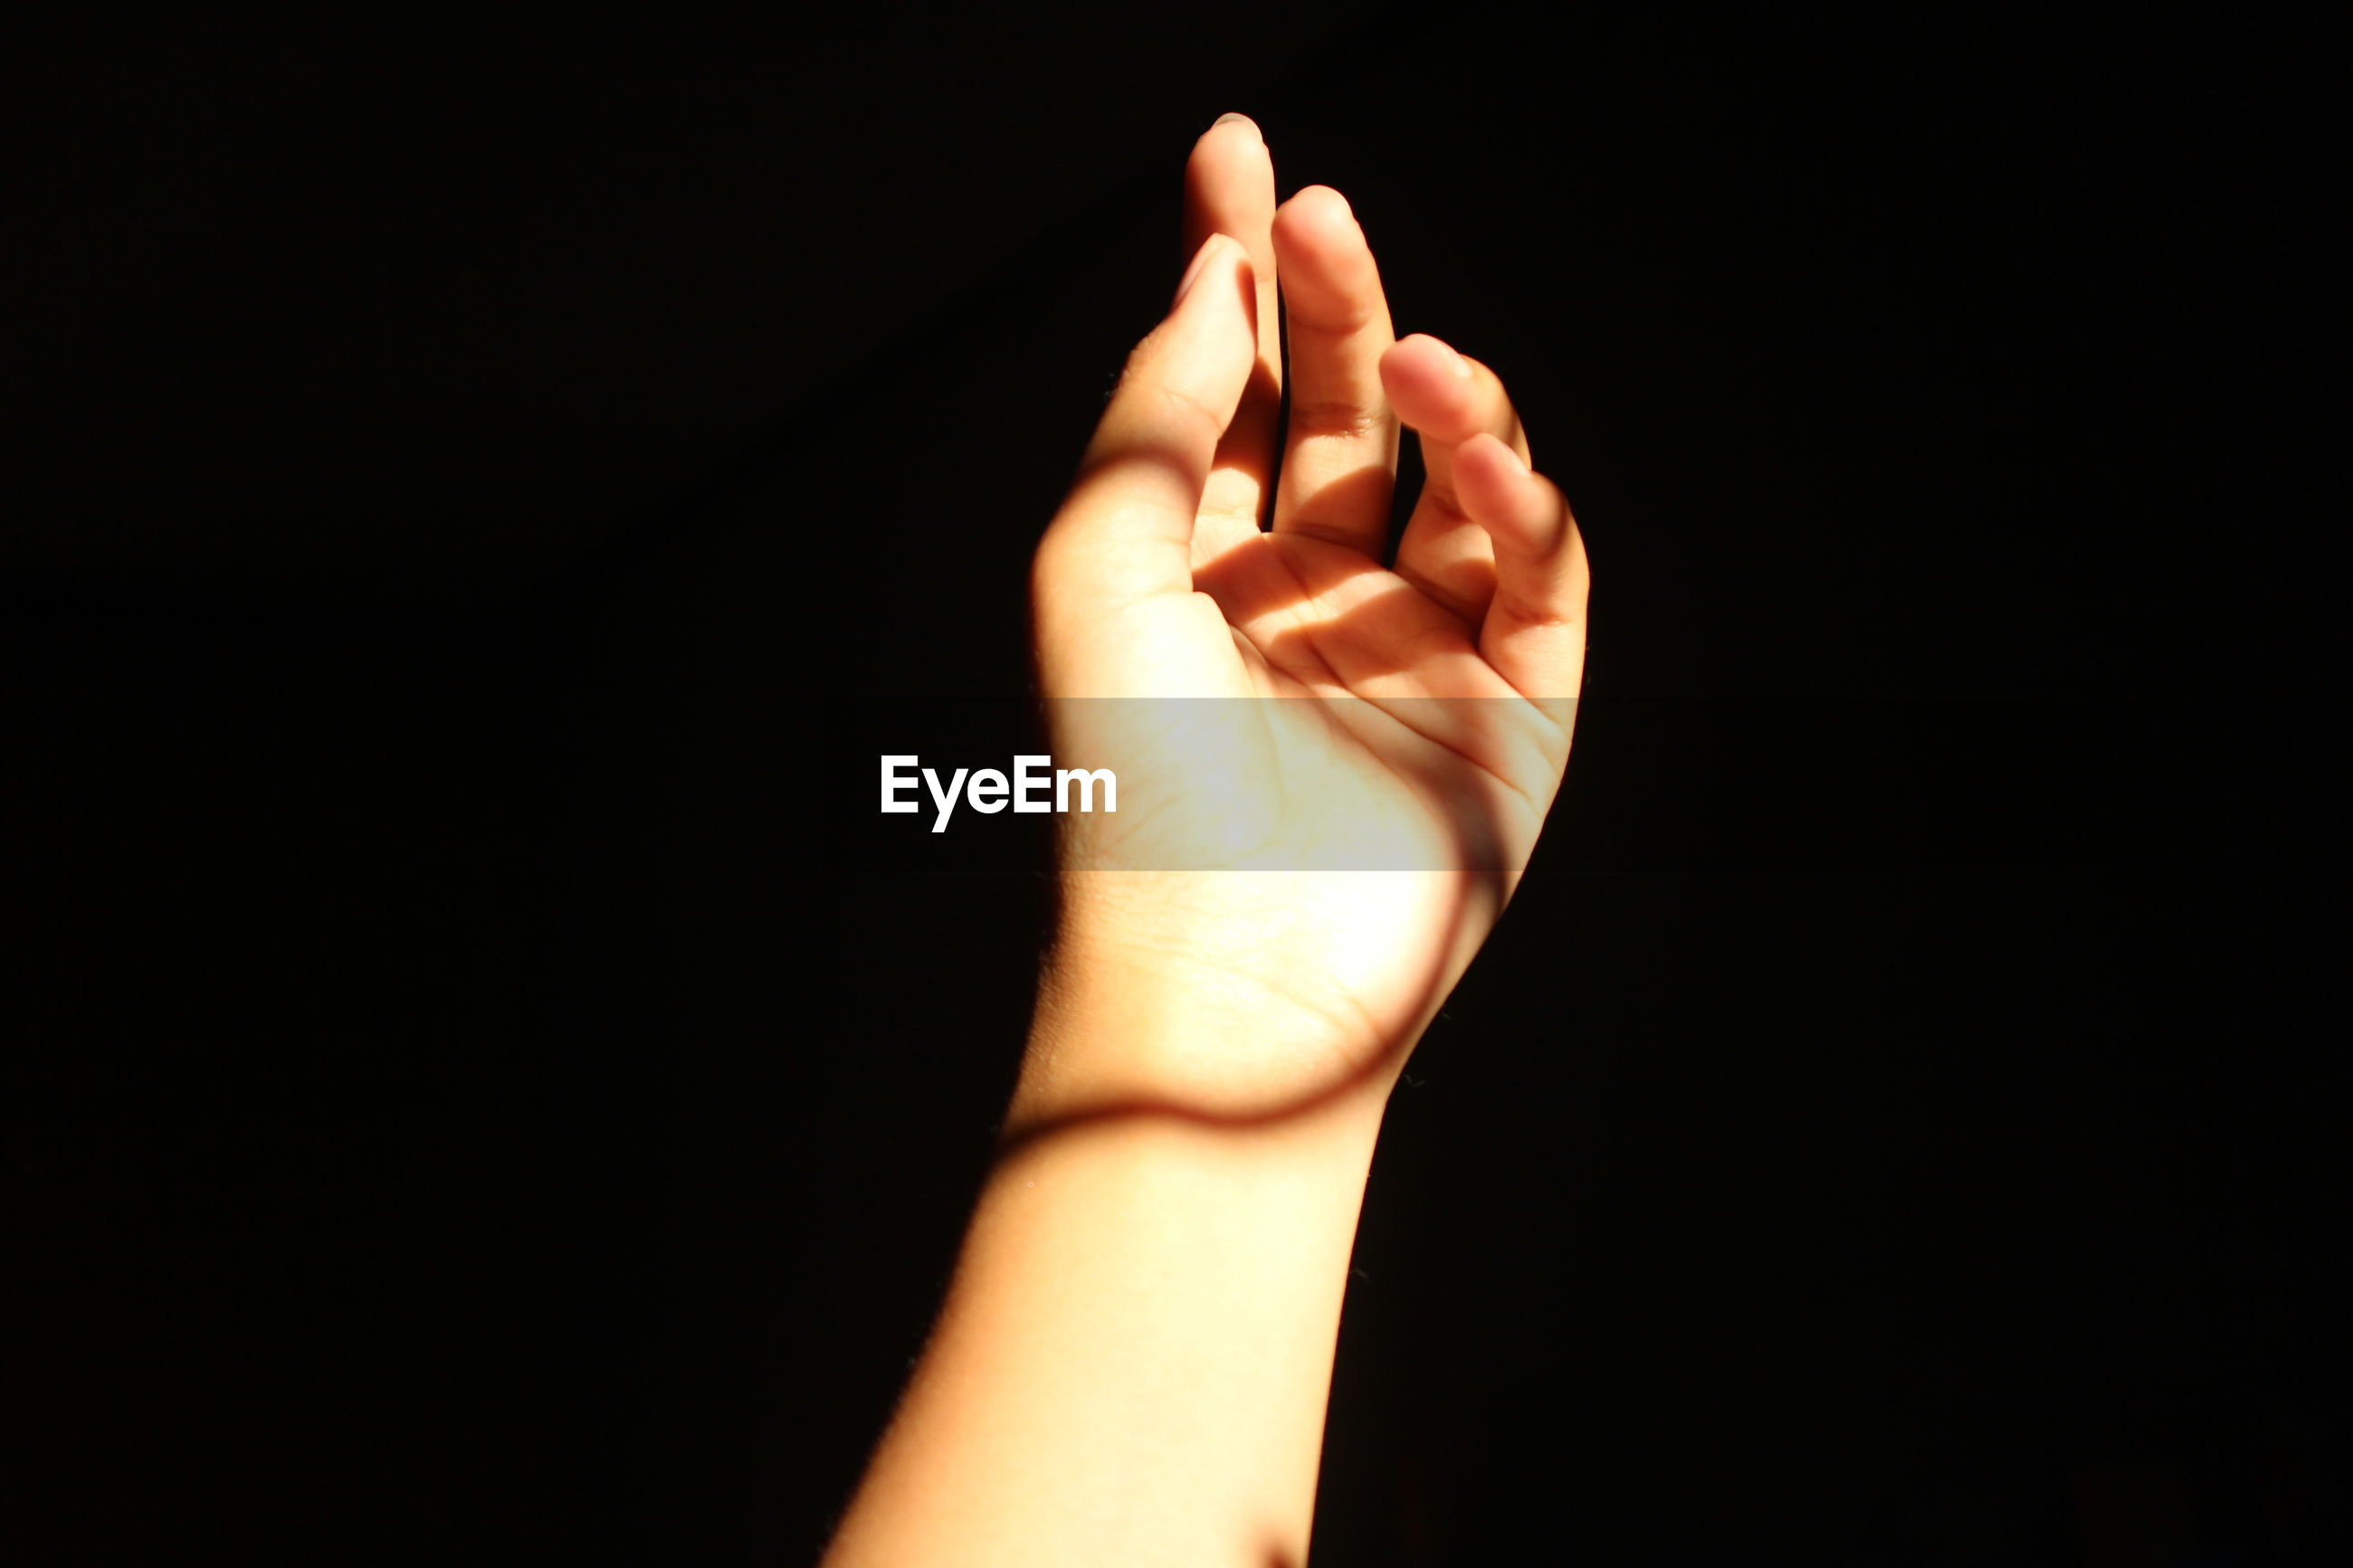 CROPPED IMAGE OF PERSON HAND WITH TEXT AGAINST BLACK BACKGROUND